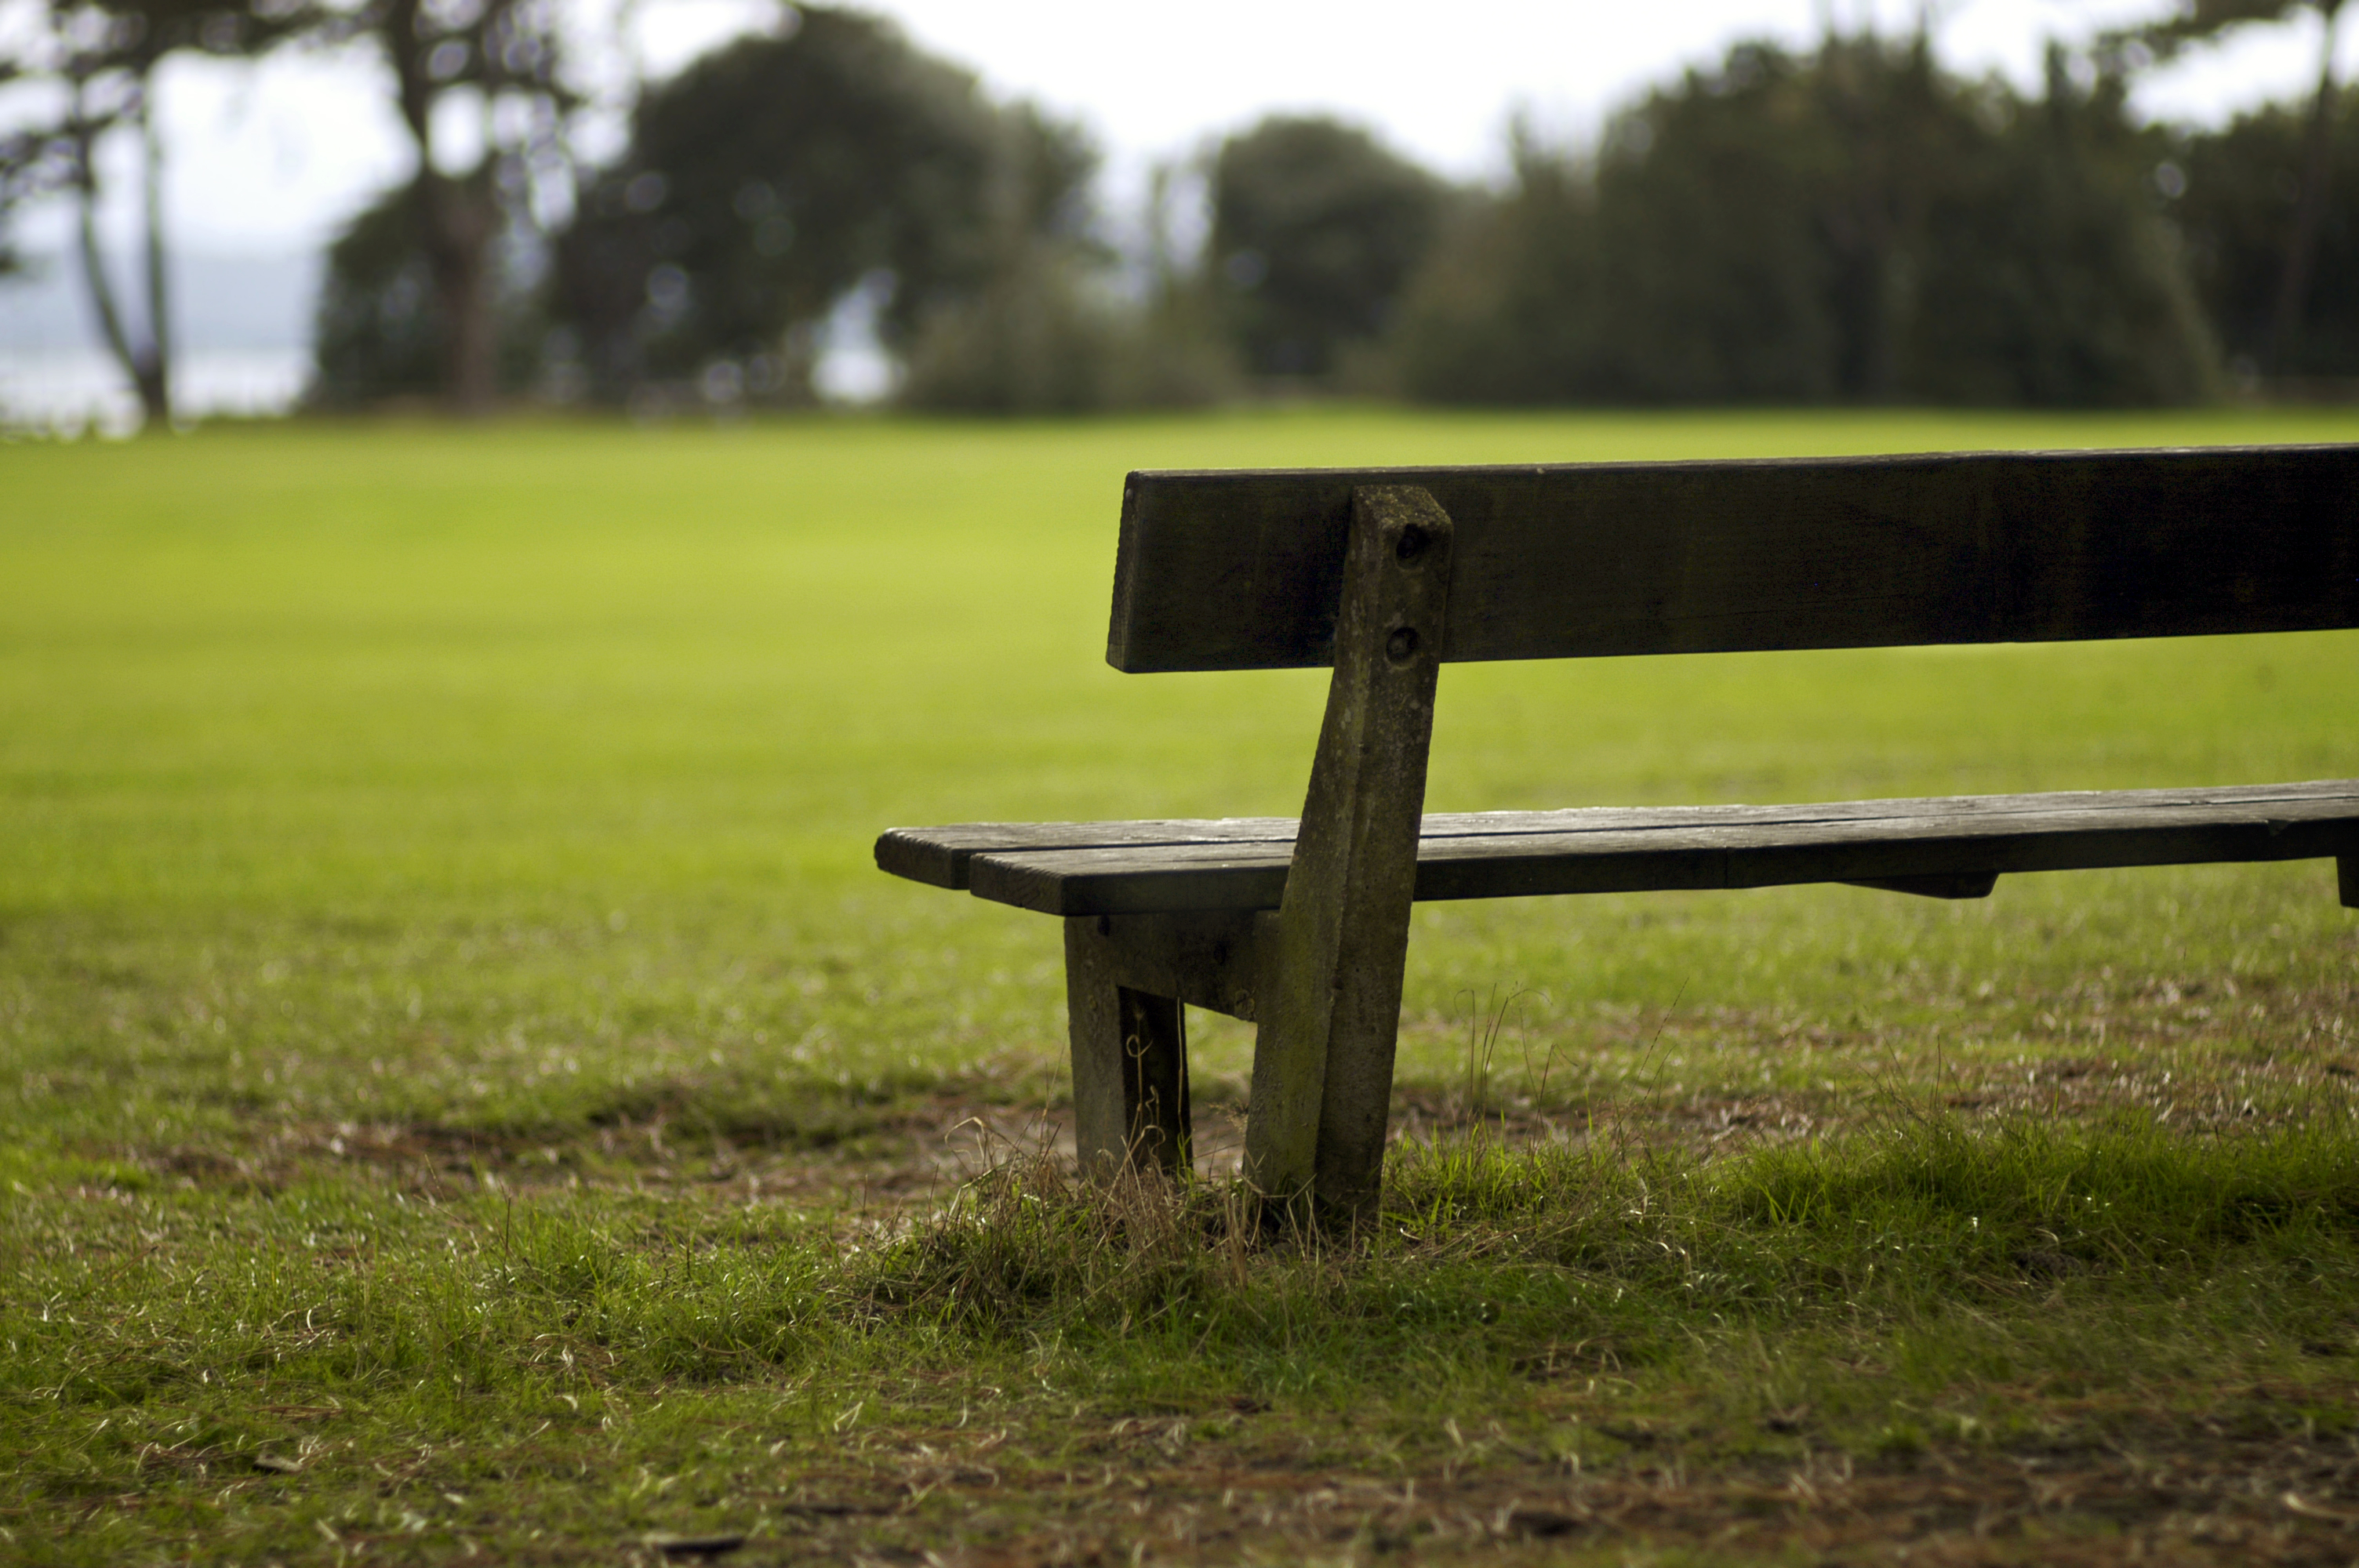 Solitary bench in park